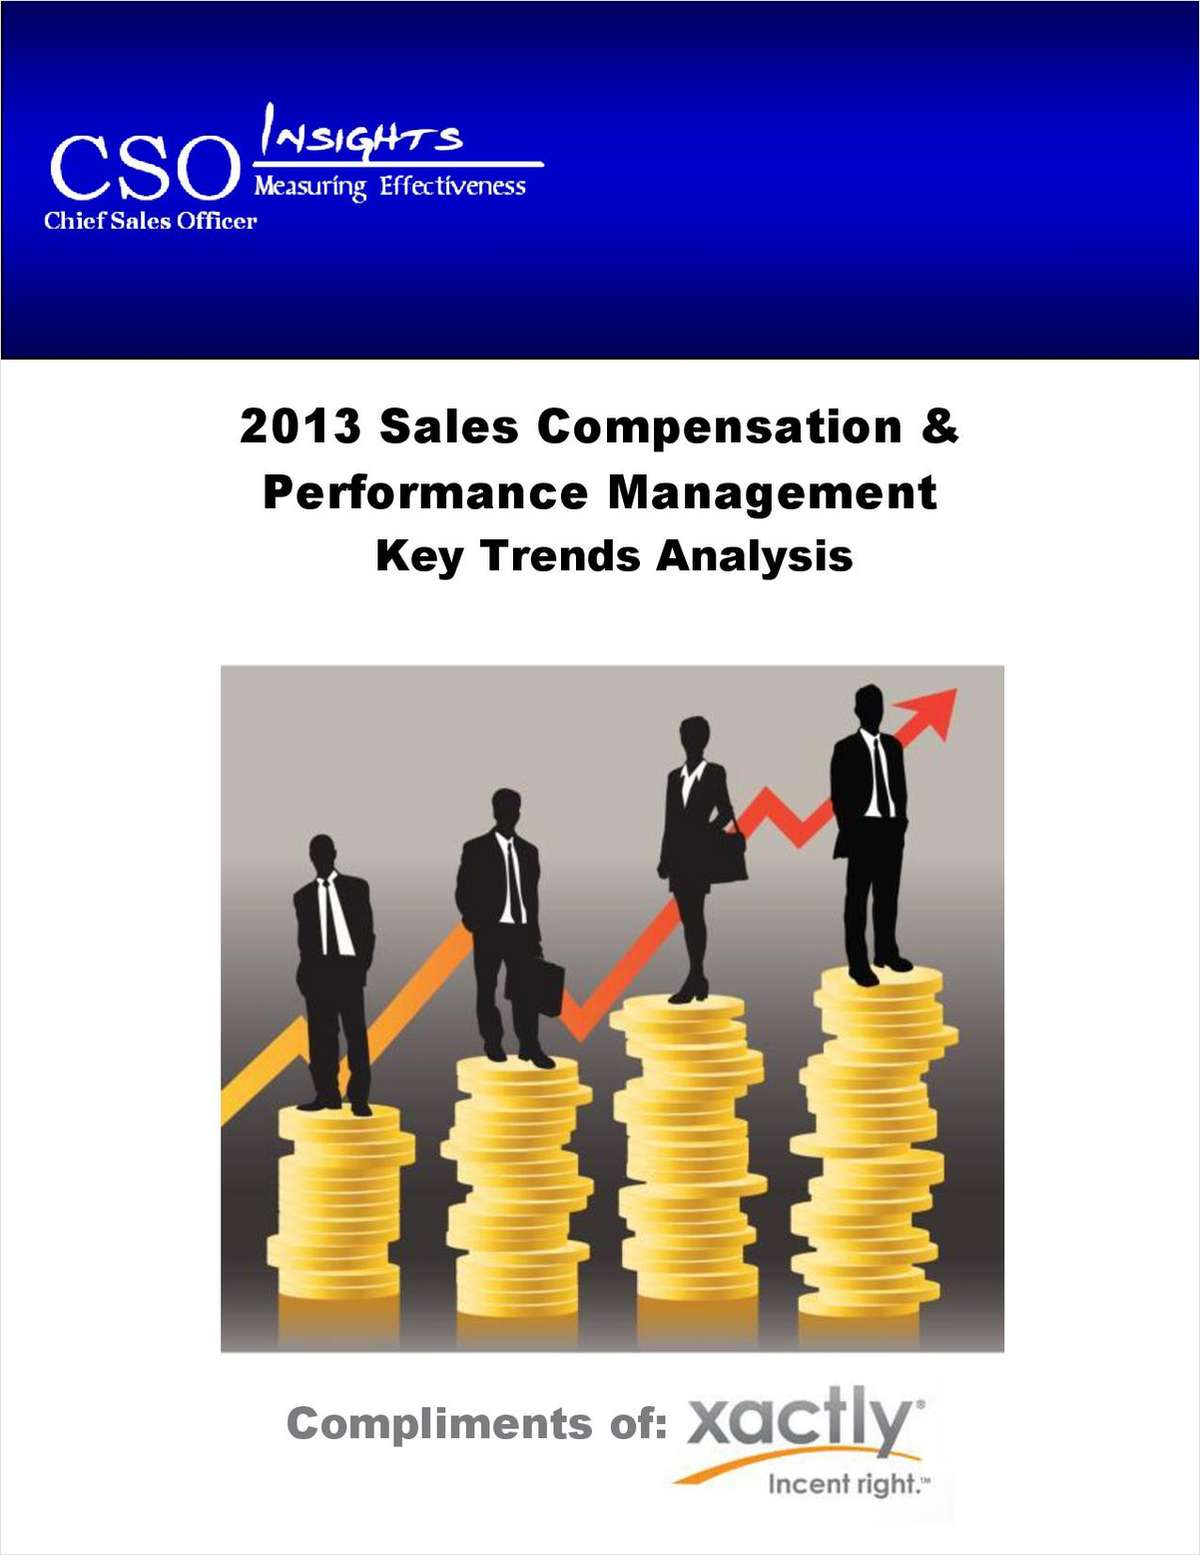 2013 Sales Compensation & Performance Management Key Trends Analysis